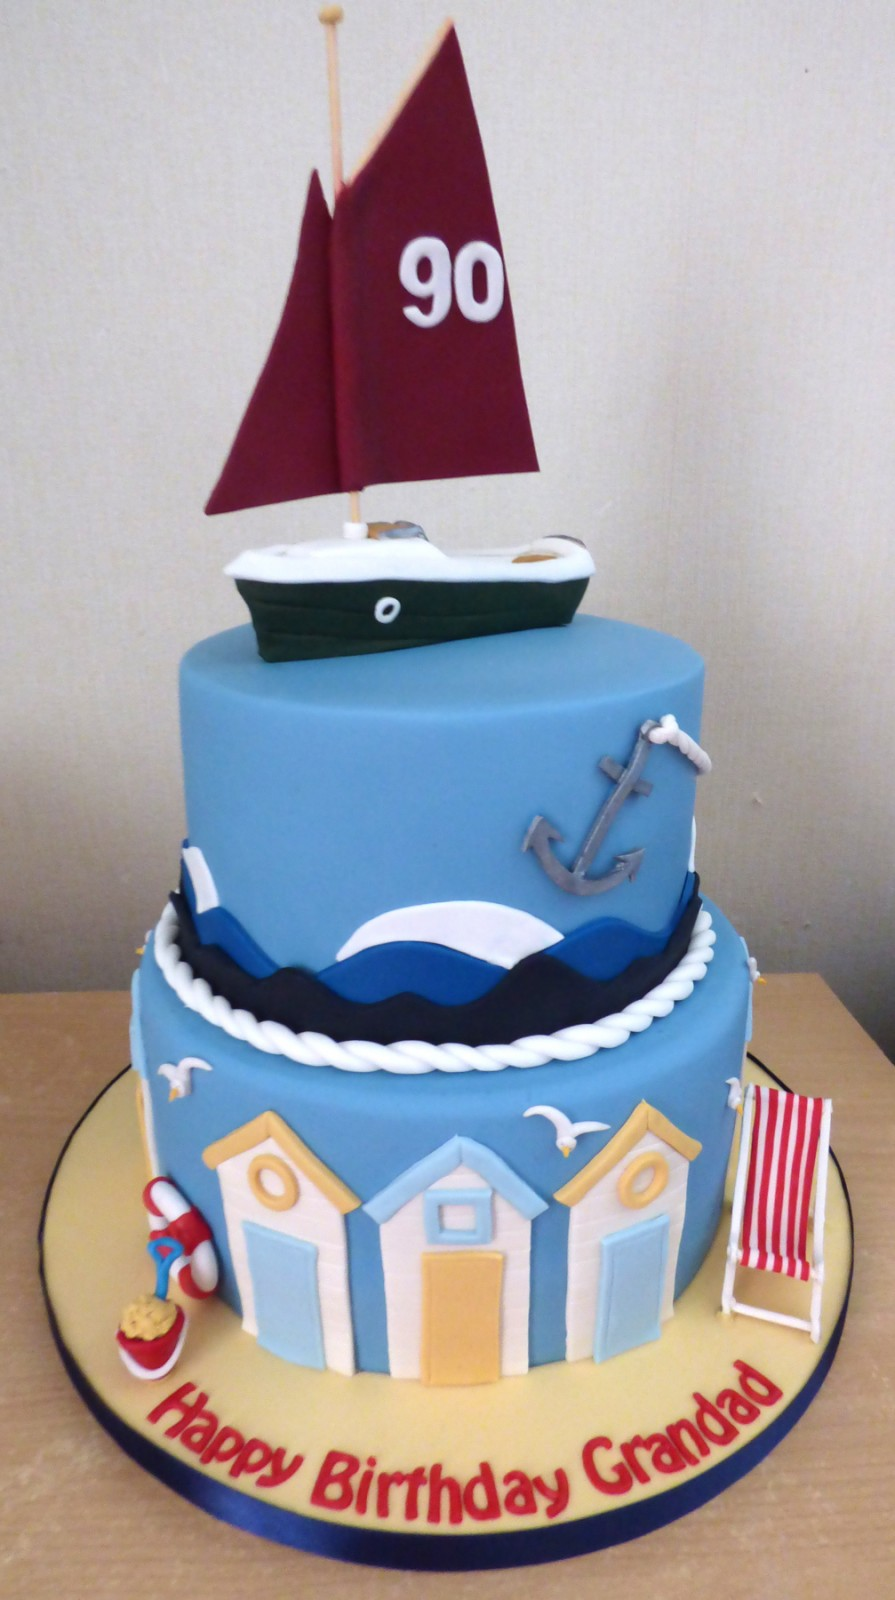 Superb 2 Tier Cornish Crabber Beach Birthday Cake Susies Cakes Funny Birthday Cards Online Inifofree Goldxyz